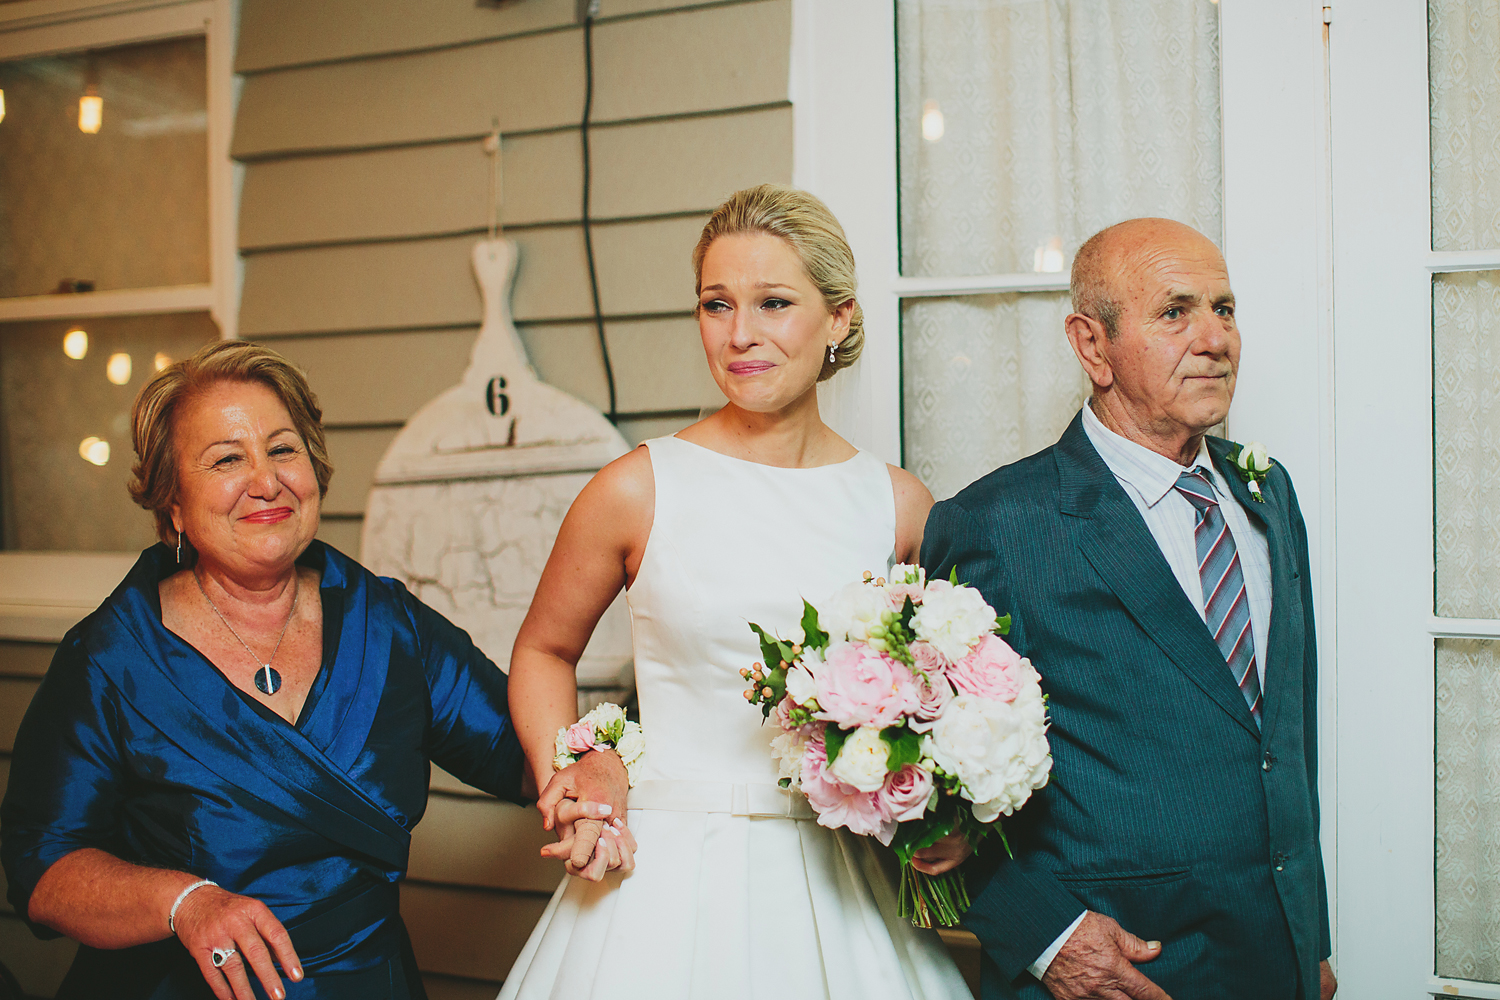 Ecostudio_fellini_wedding_photography044